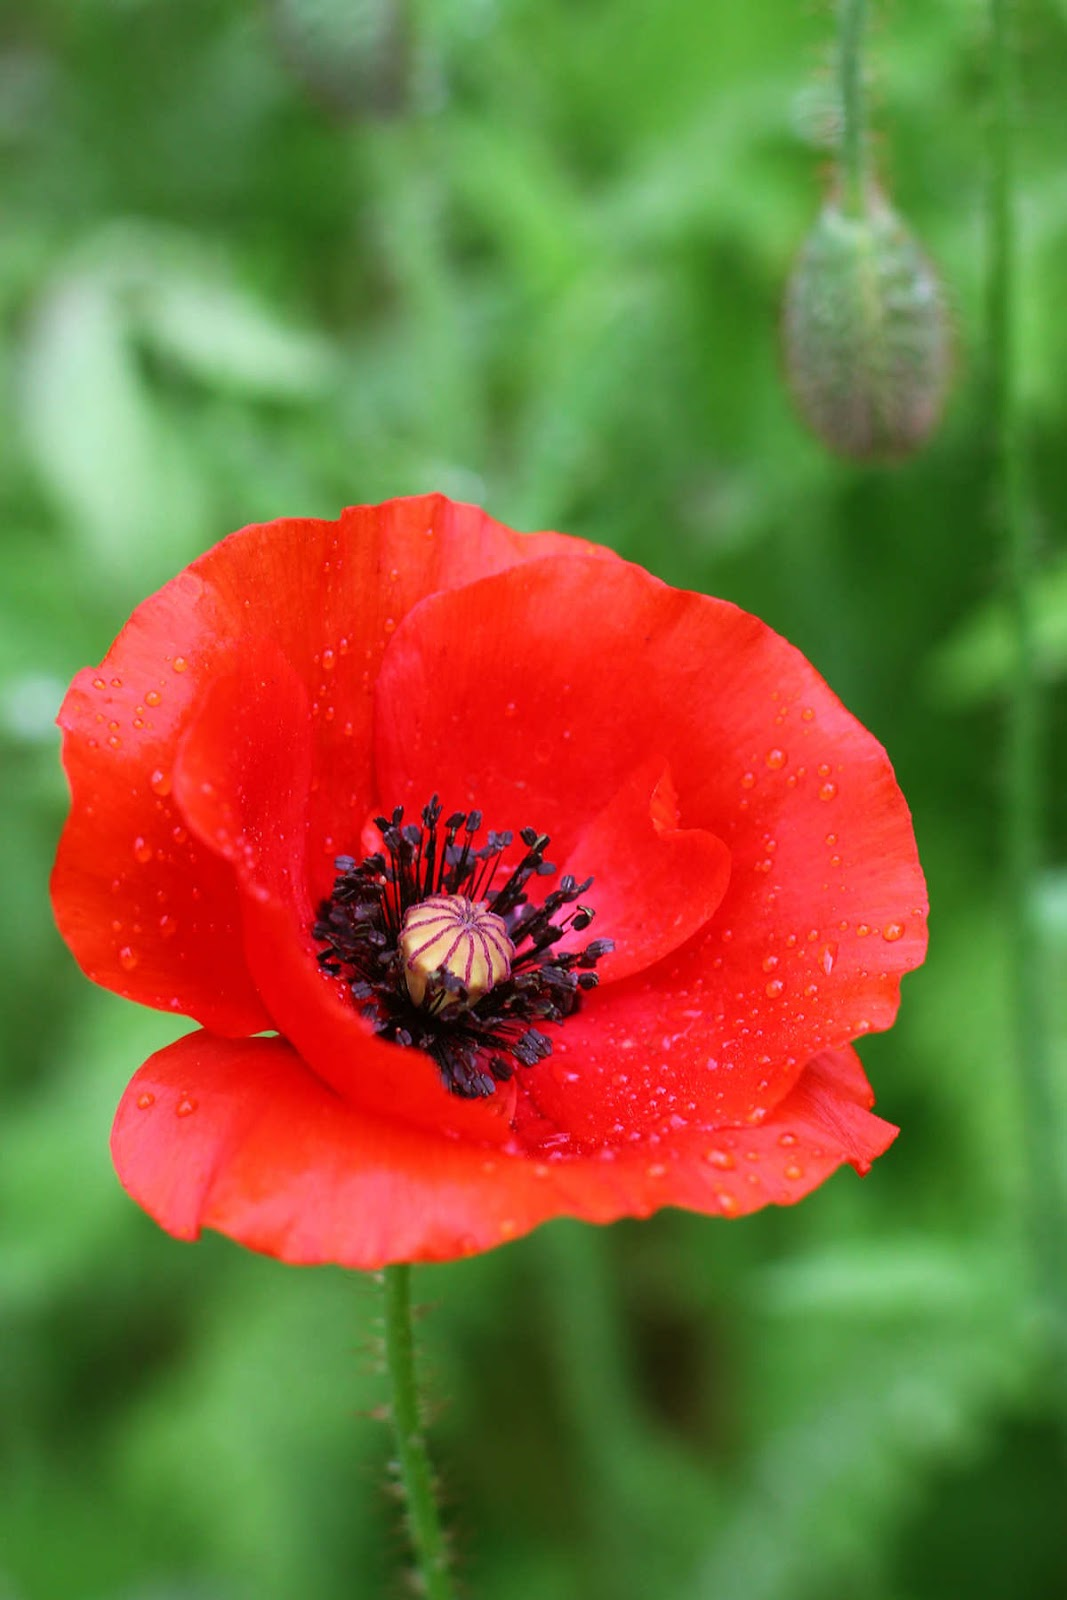 Flowers poppy backgrounds and wallpapers poppy poppy № 34252